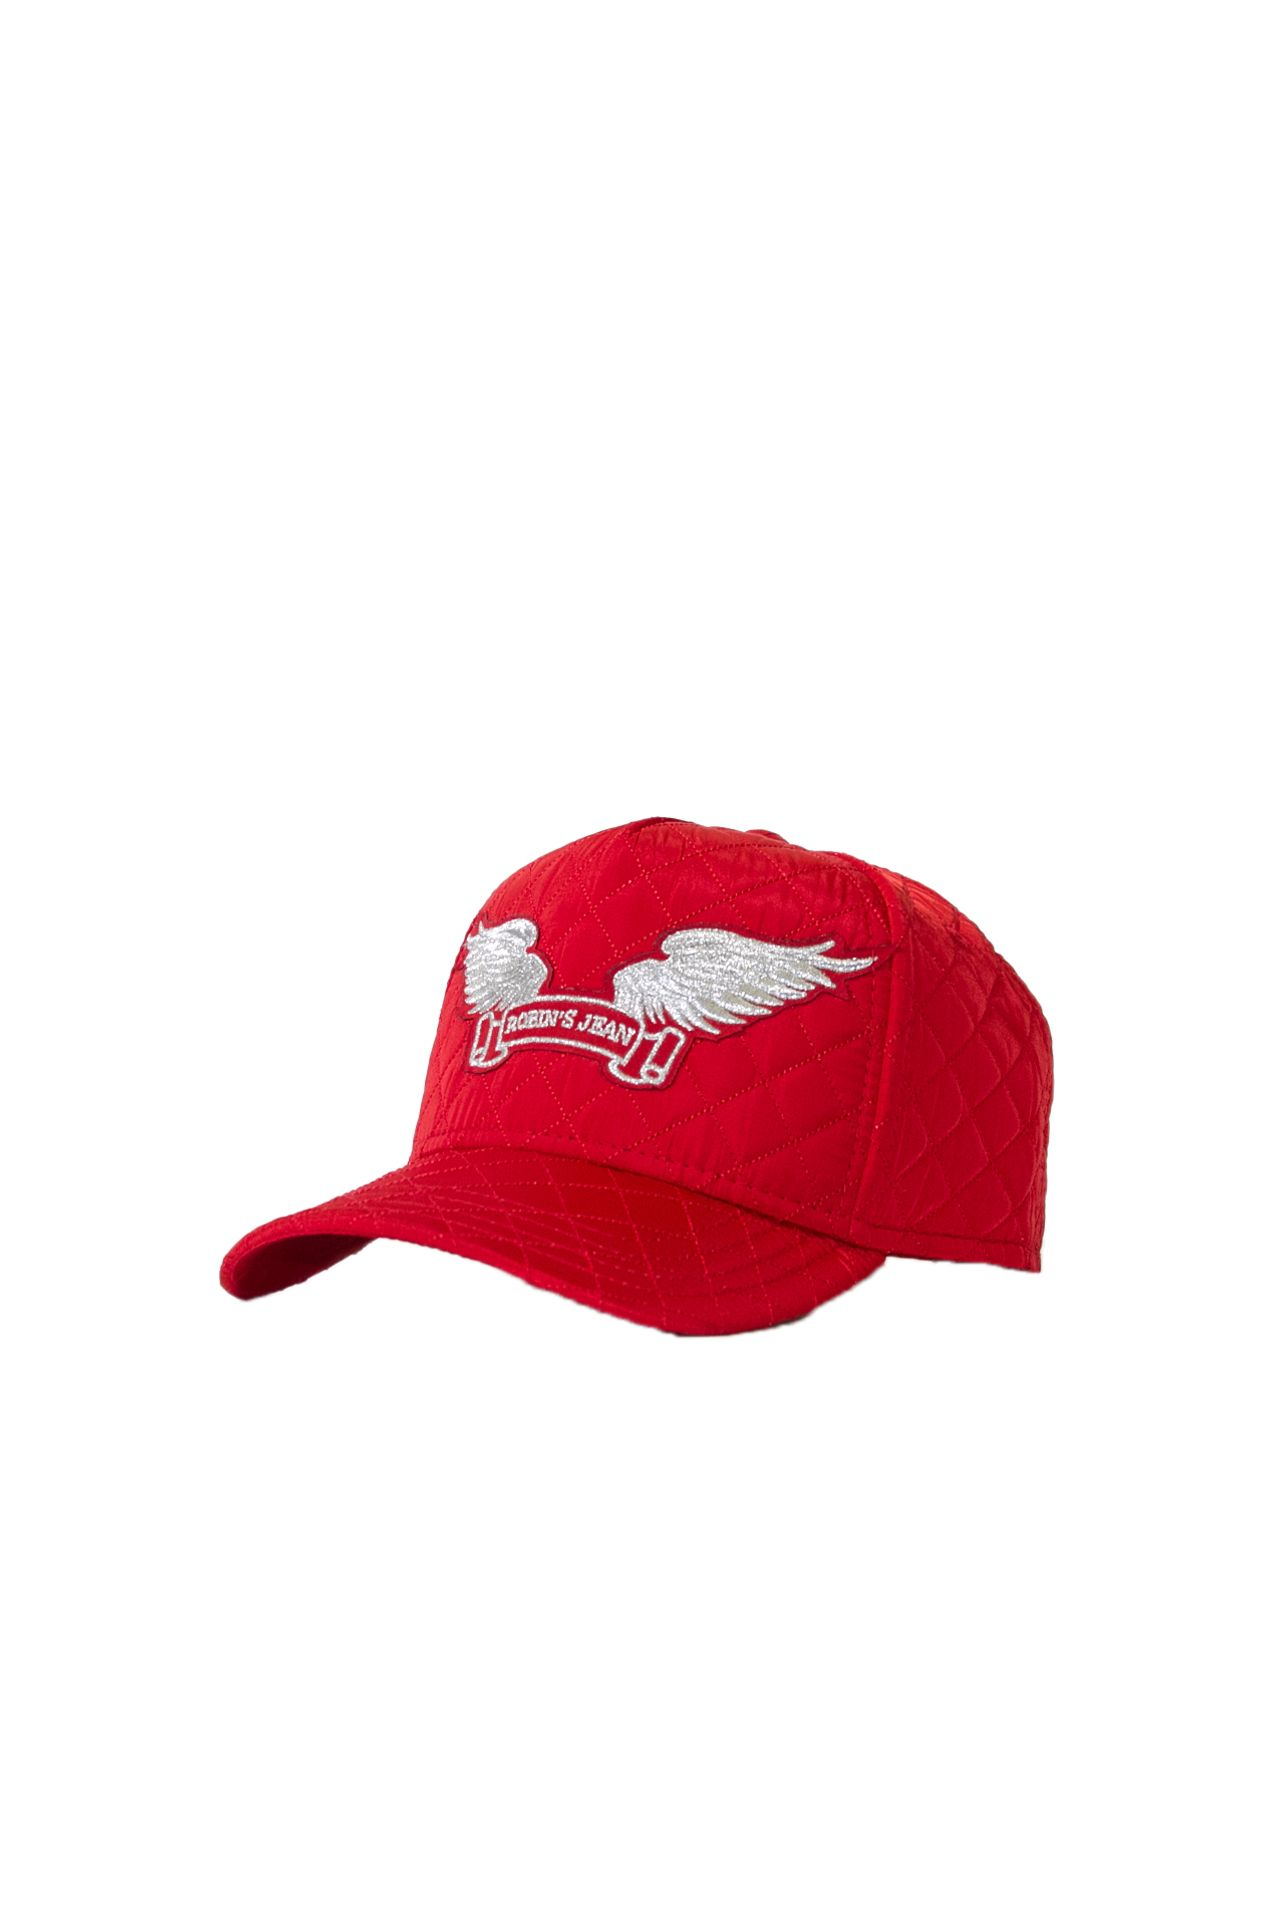 QUILTED RED CAP